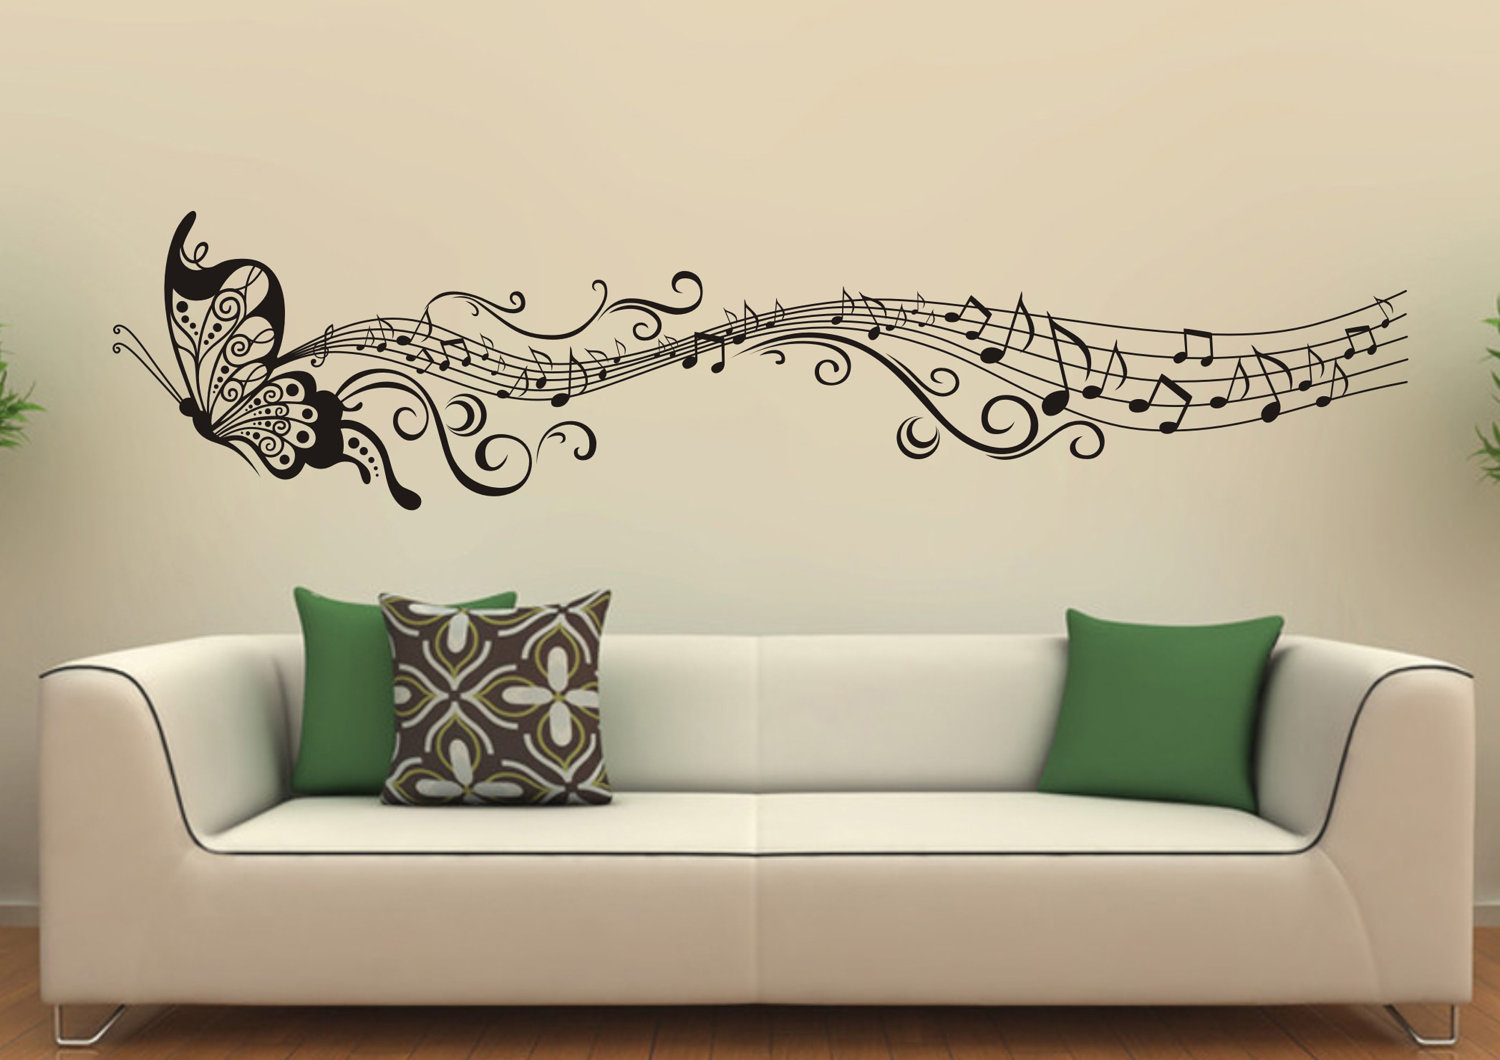 Beautiful Black Butterfly Wall Decorating Ideas Decorating Sitting Room with Long Sofa and Green Cushions